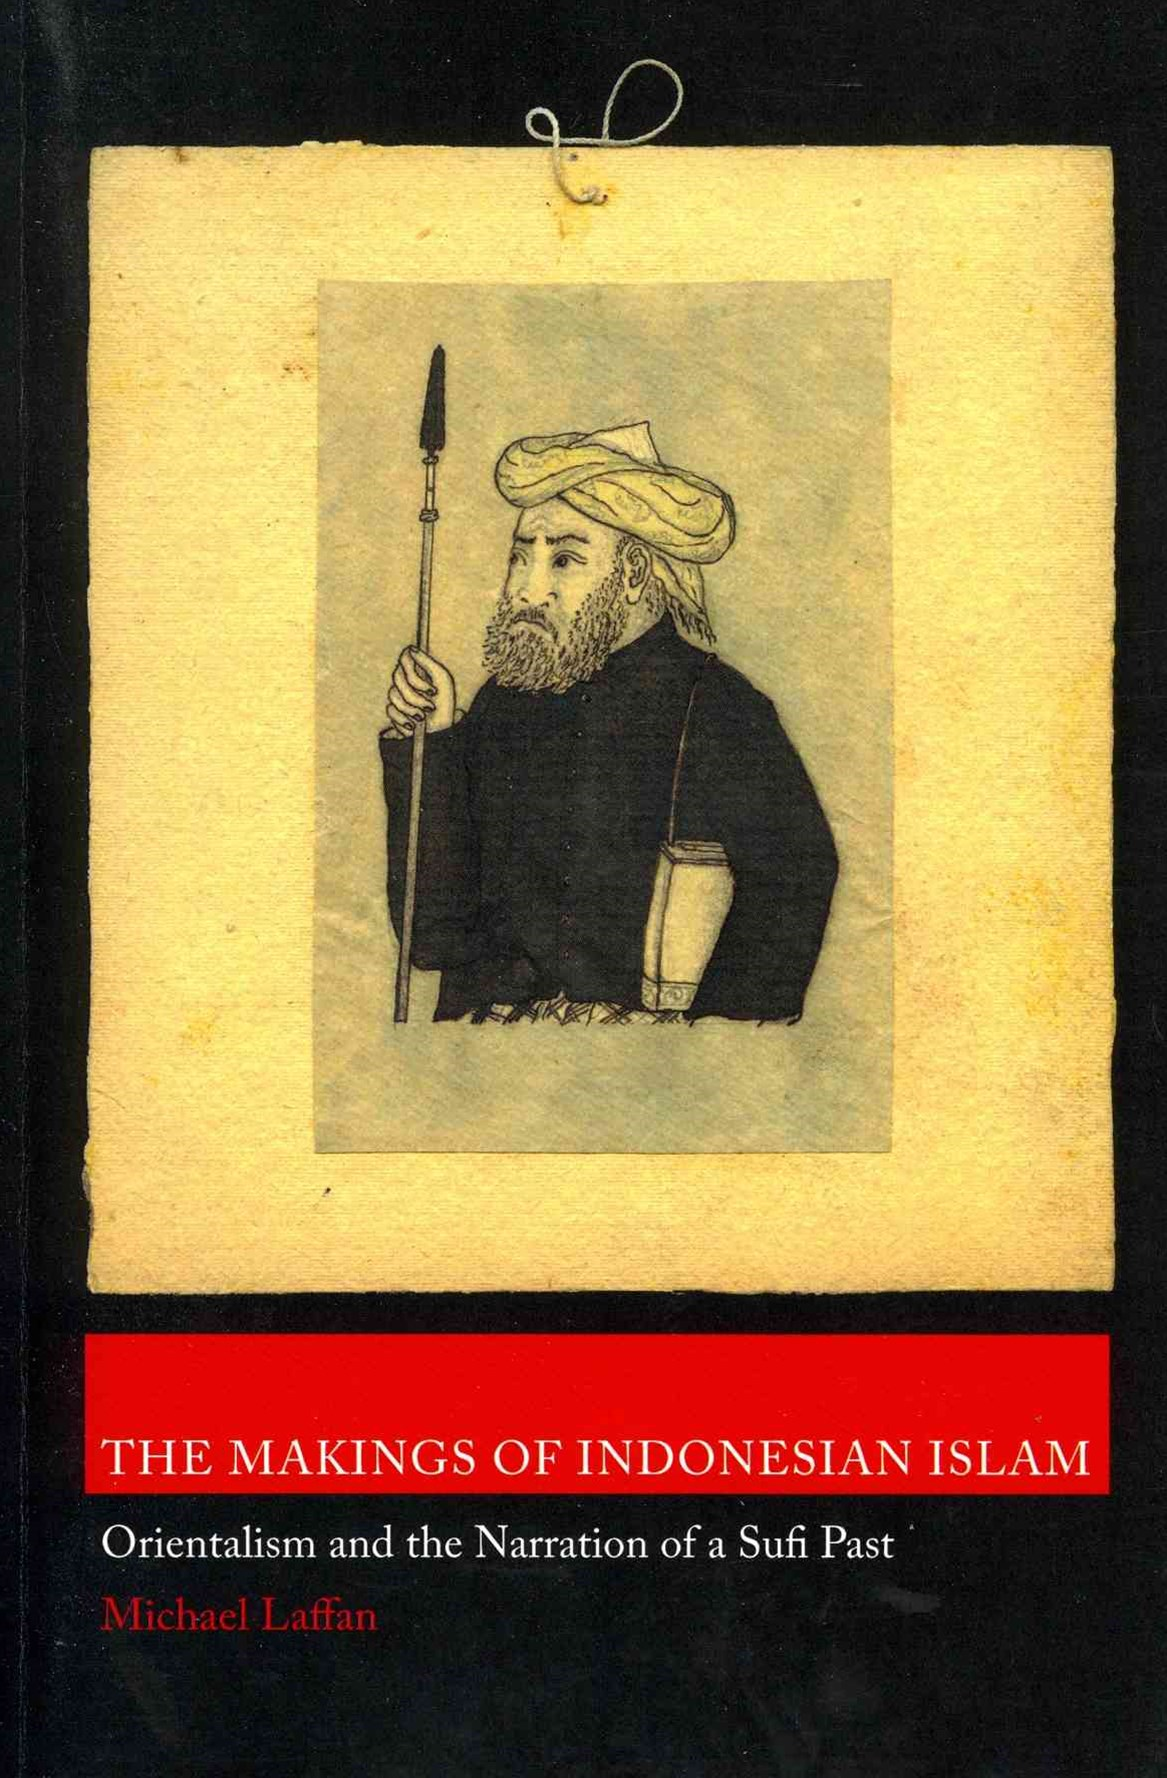 The Makings of Indonesian Islam